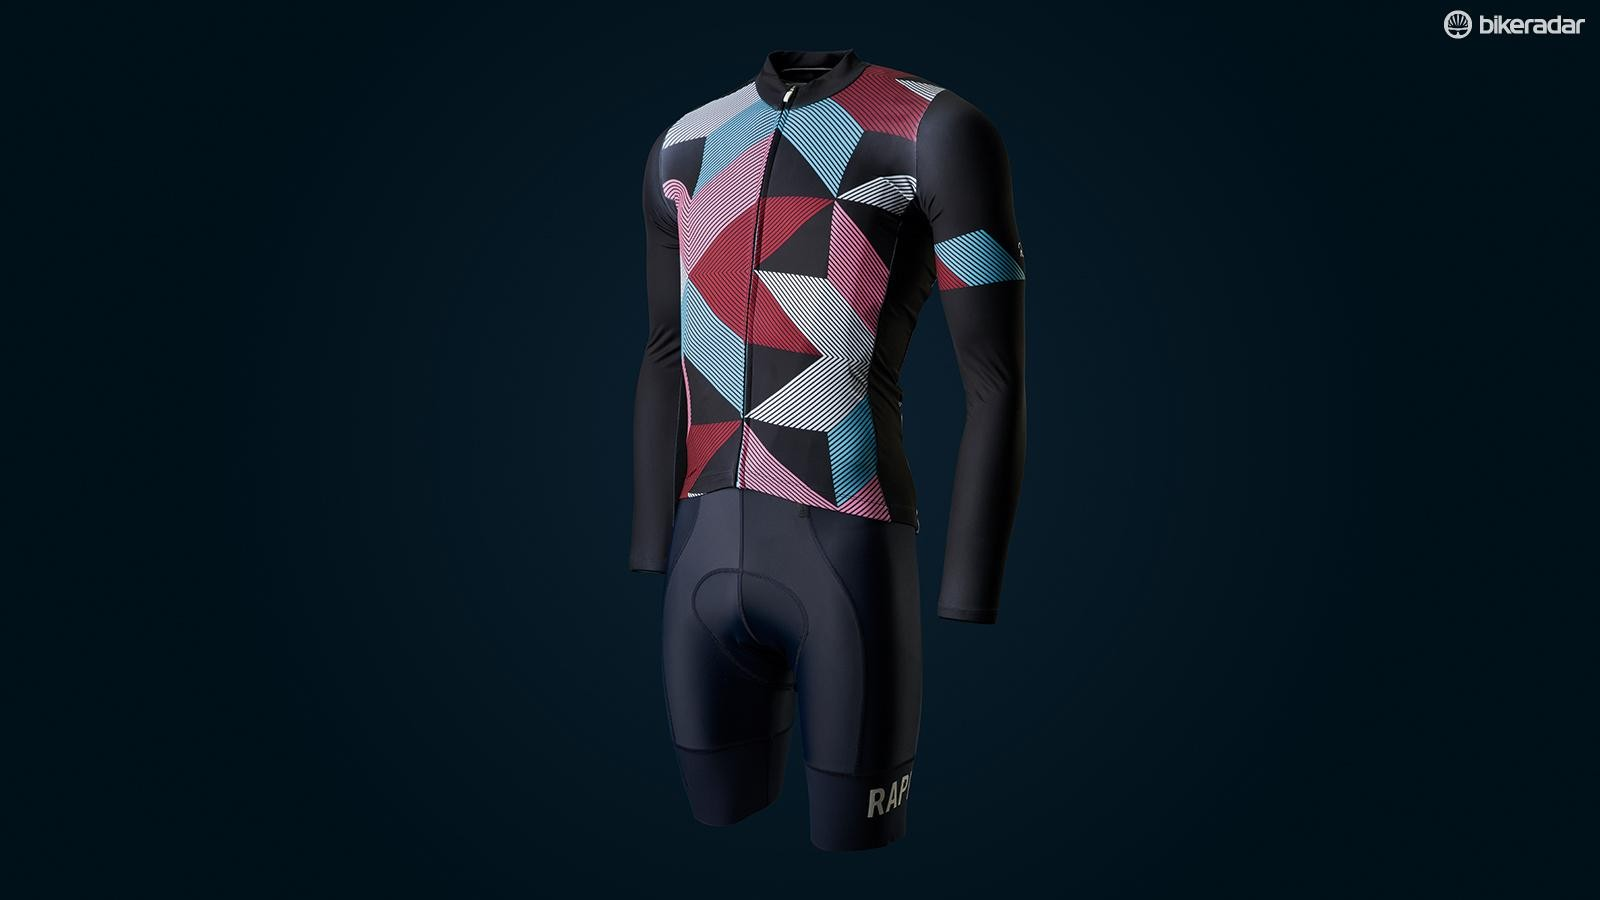 Rapha Cross Jersey and Pro Team Bib shorts